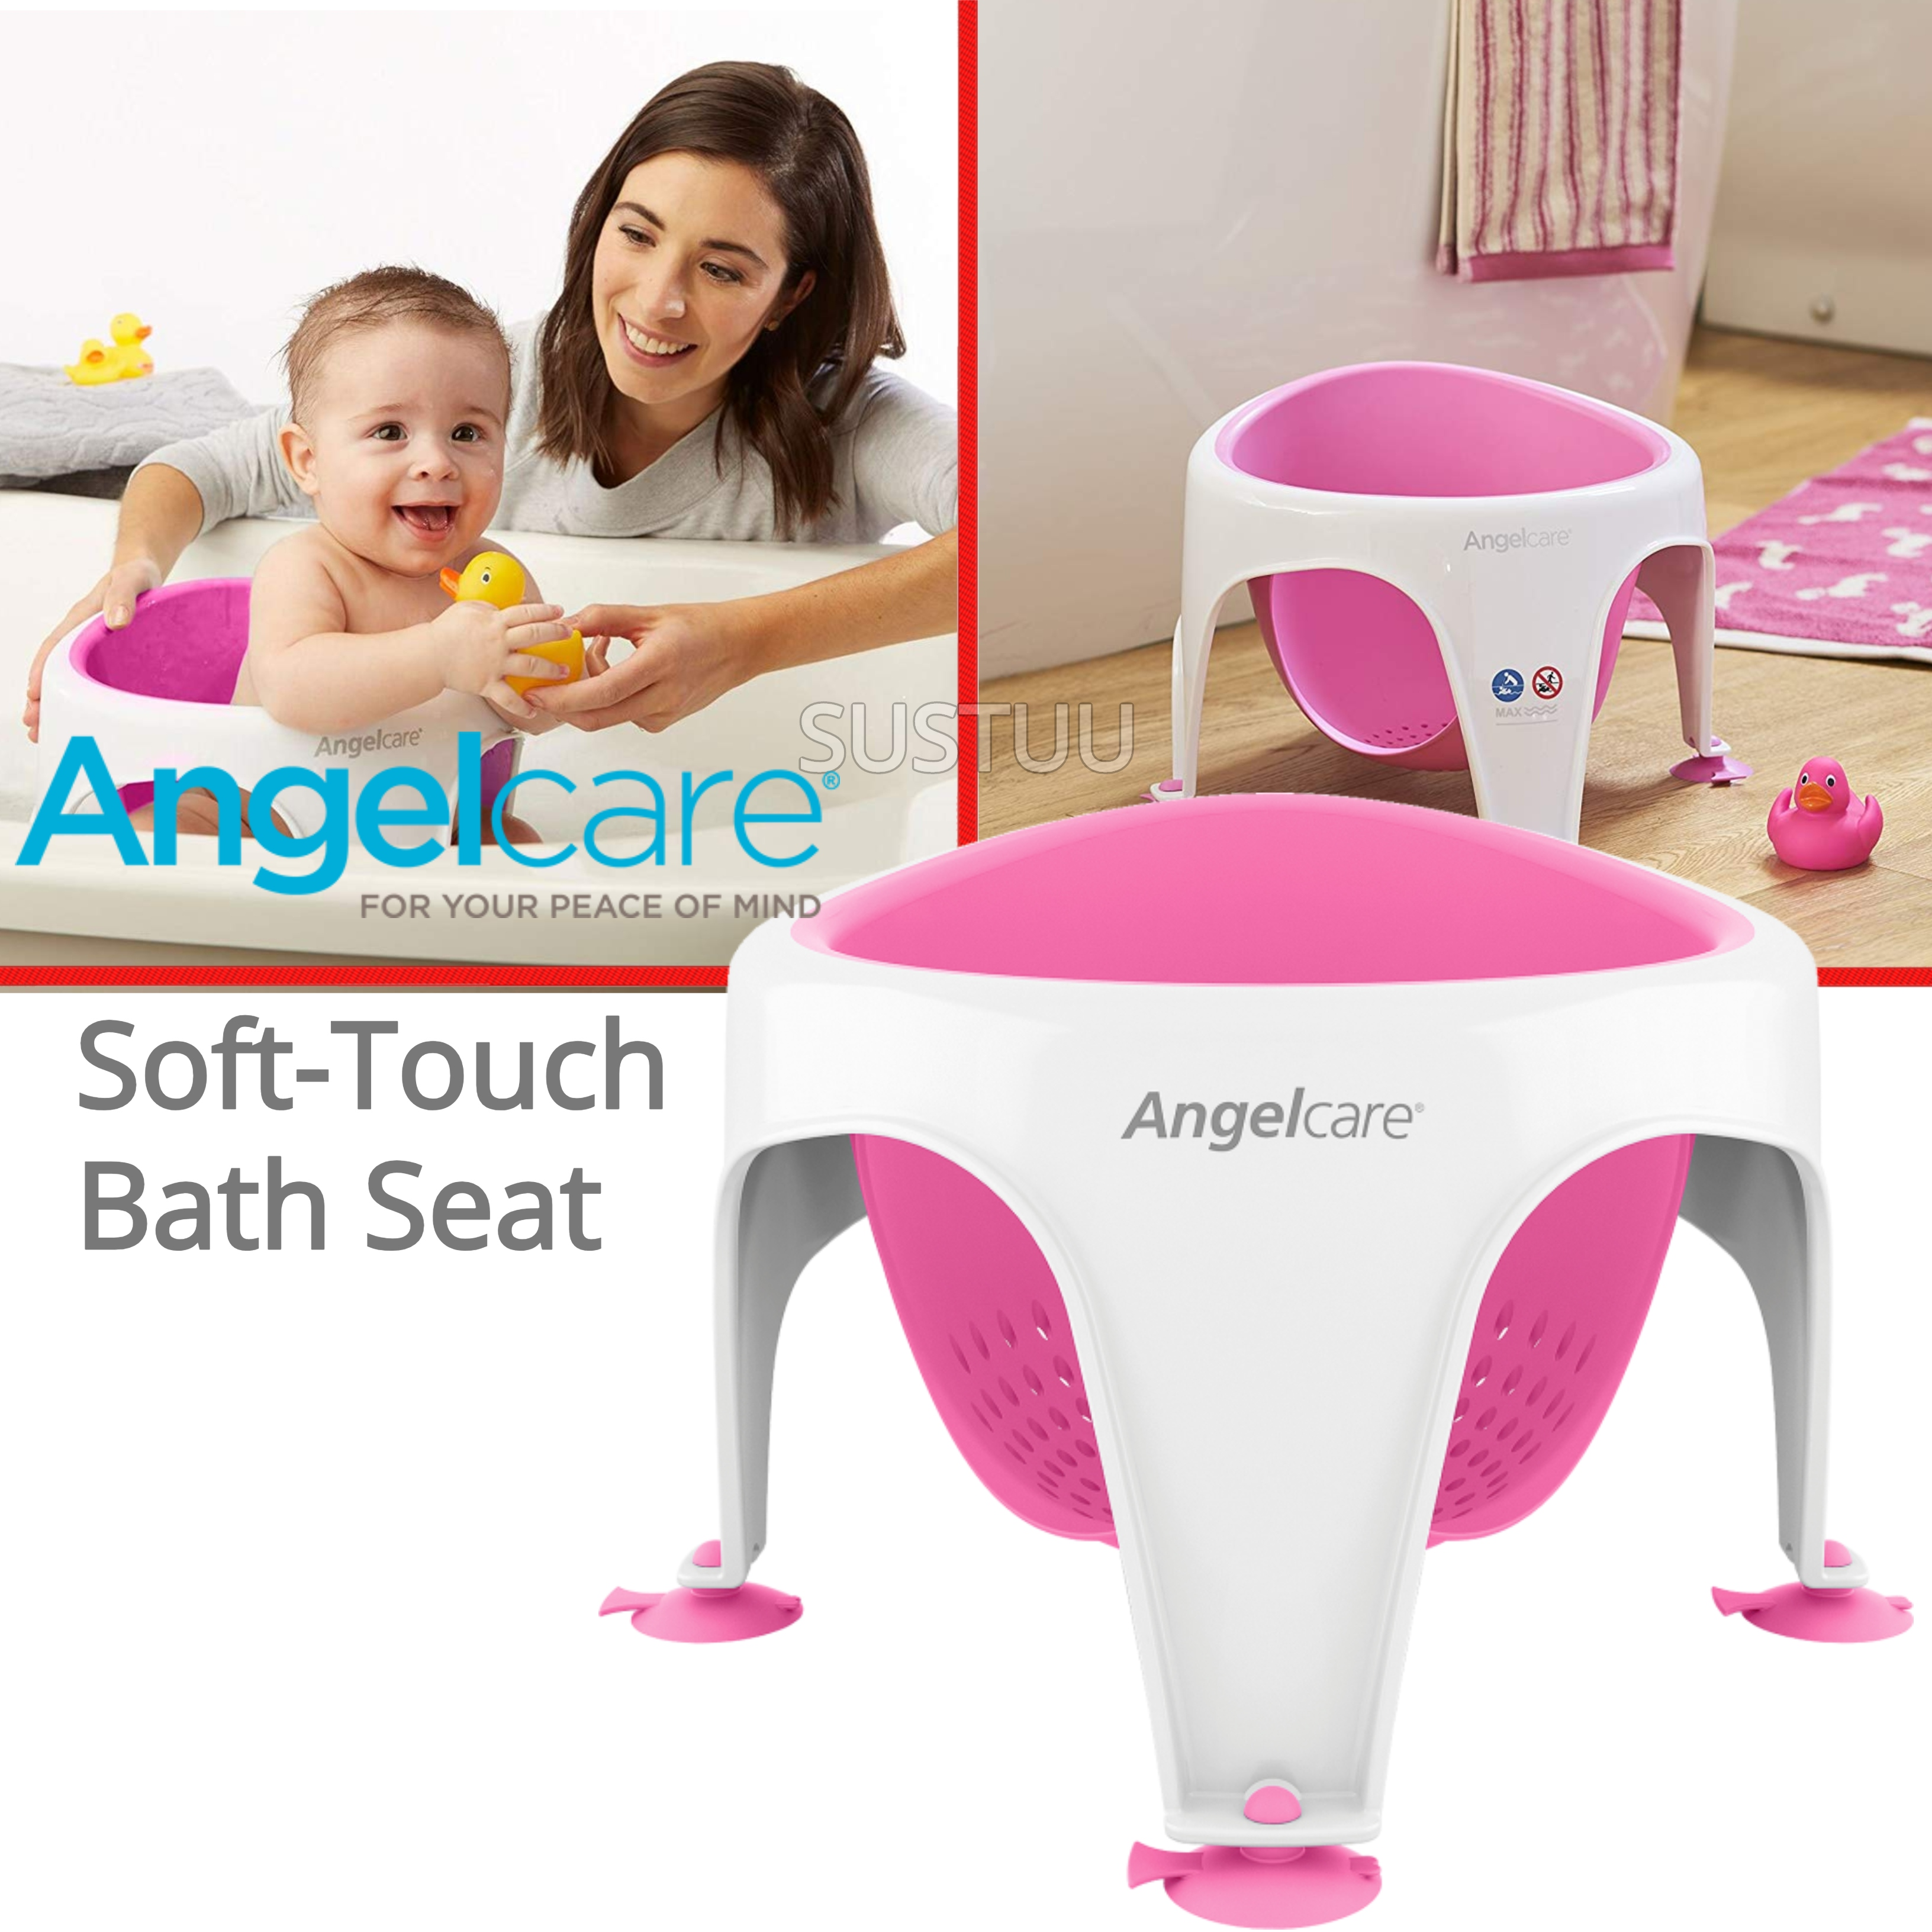 Angelcare Soft-Touch Baby Bath Seat Pink | Lightweight | TPE Material | 12kg Capicity